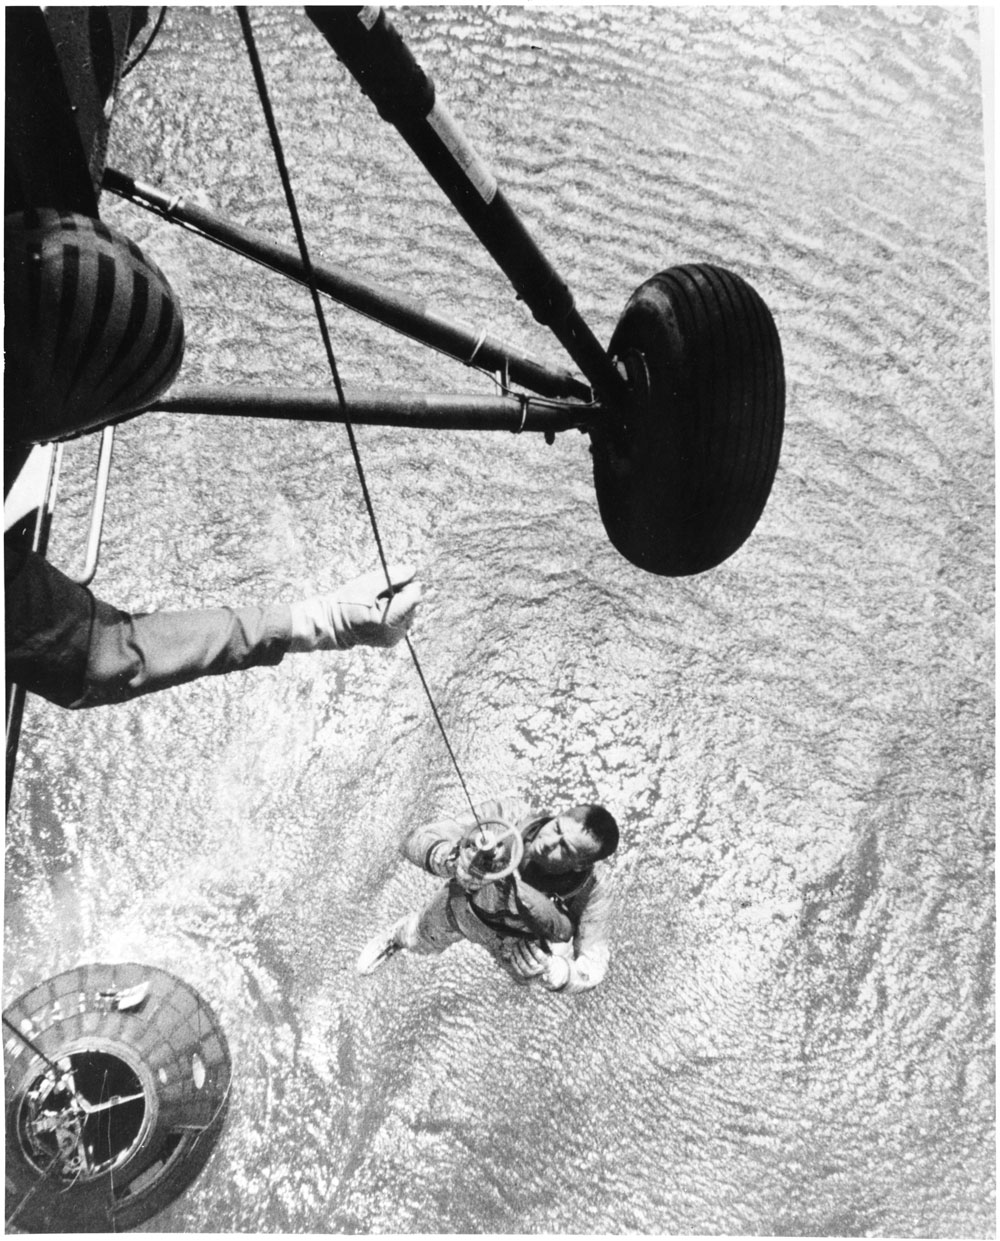 A Navy helicopter hoists Alan Shepard from the ocean after his flight.